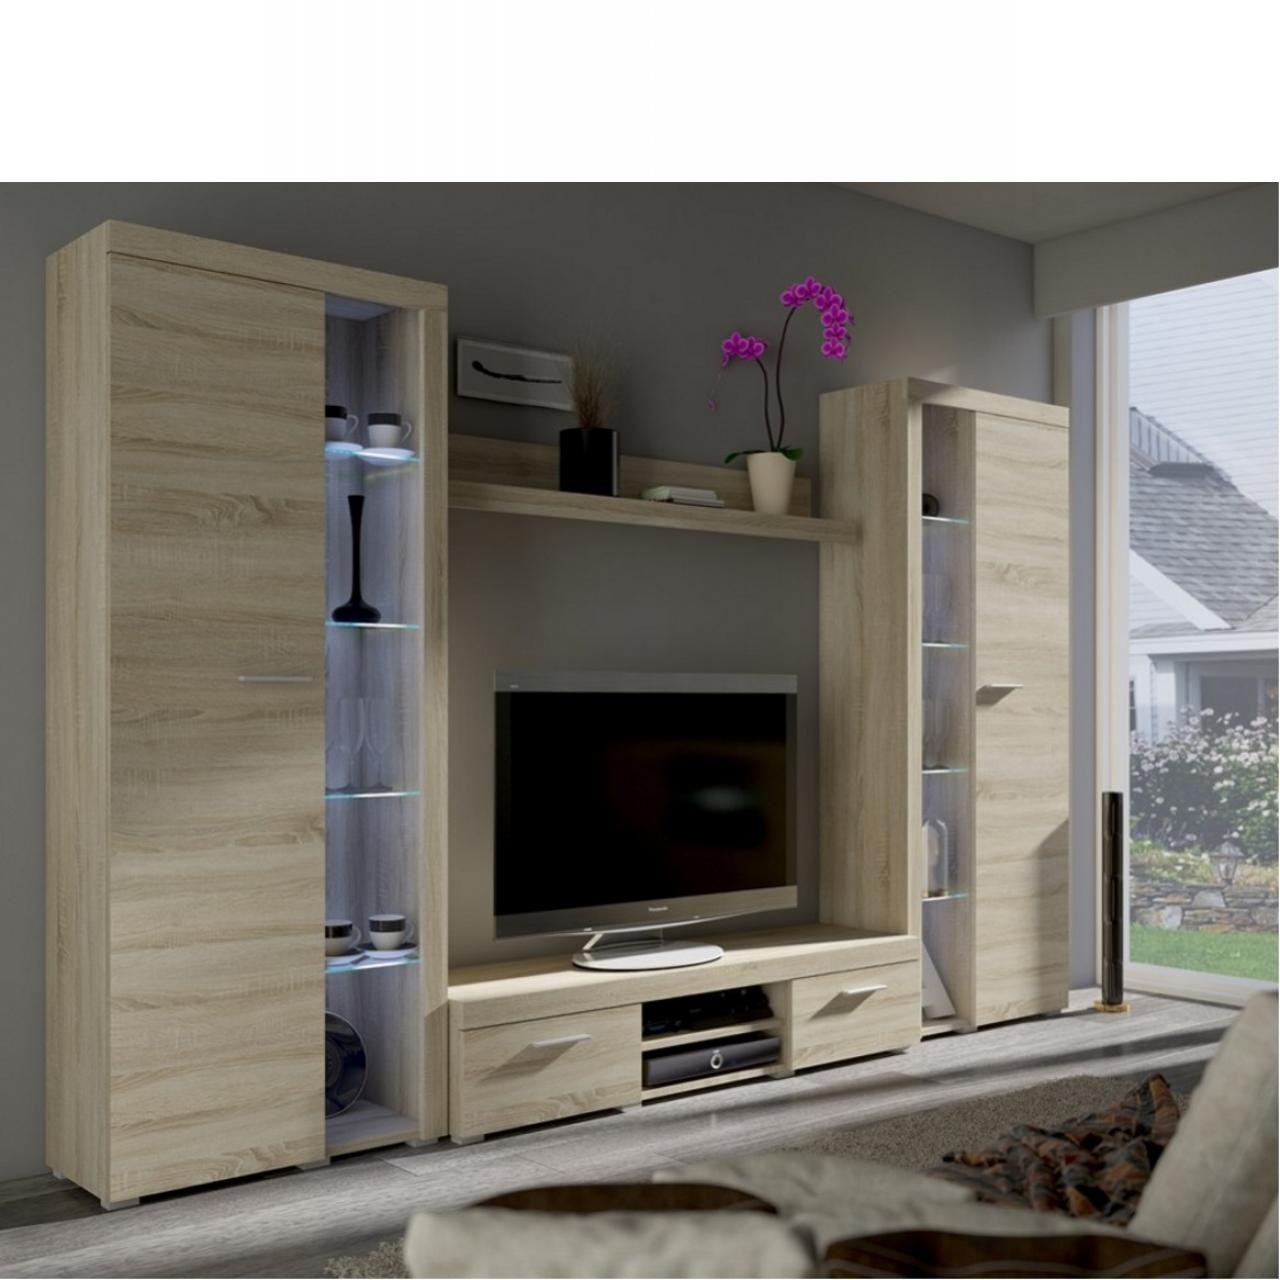 wohnw nde online kaufen m bel j hnichen center gmbh m bel j hnichen center gmbh. Black Bedroom Furniture Sets. Home Design Ideas